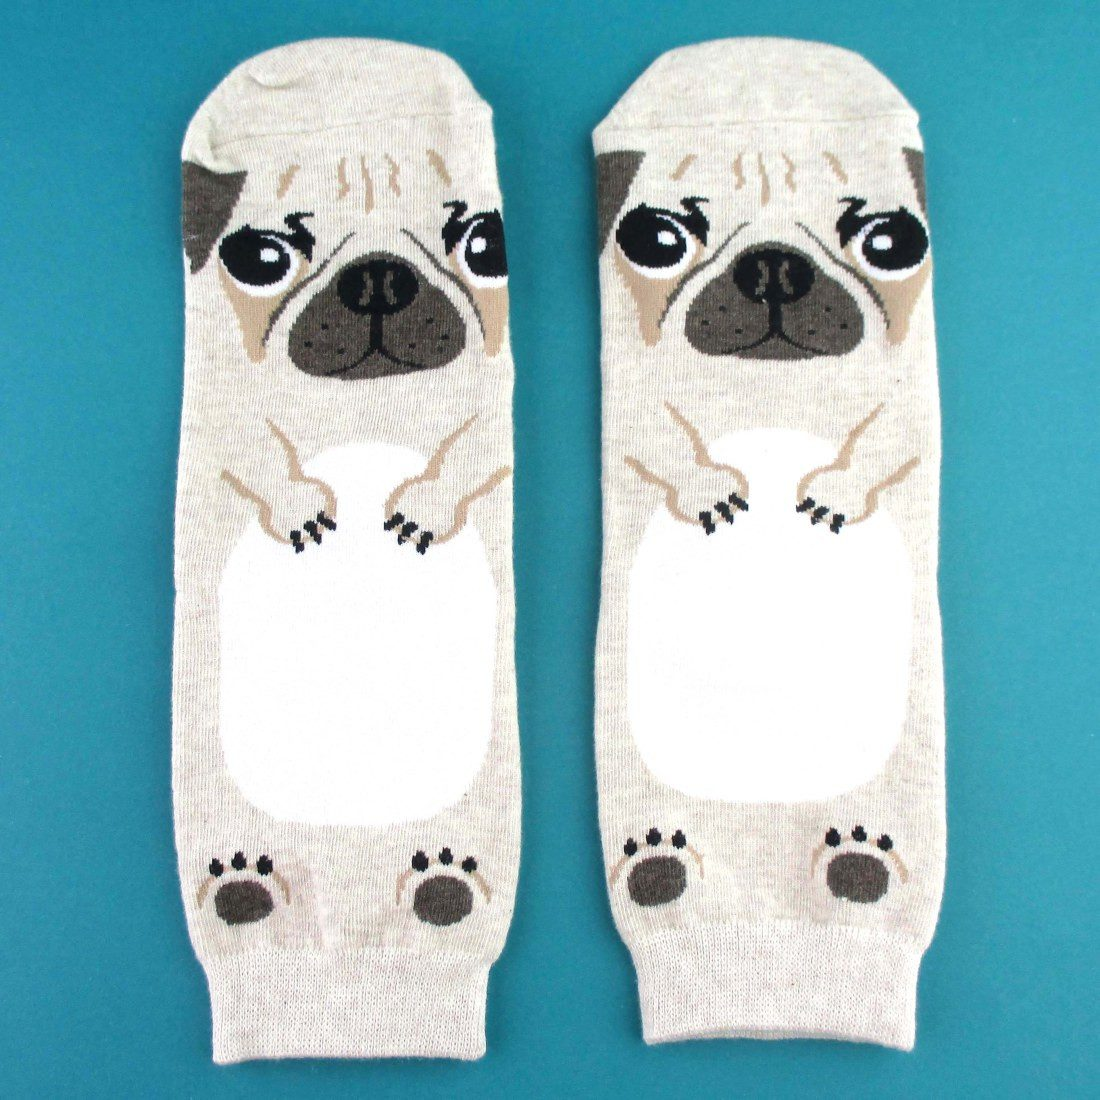 Adorable Pug Puppy Dog Shaped Cotton Socks in Khaki | DOTOLY